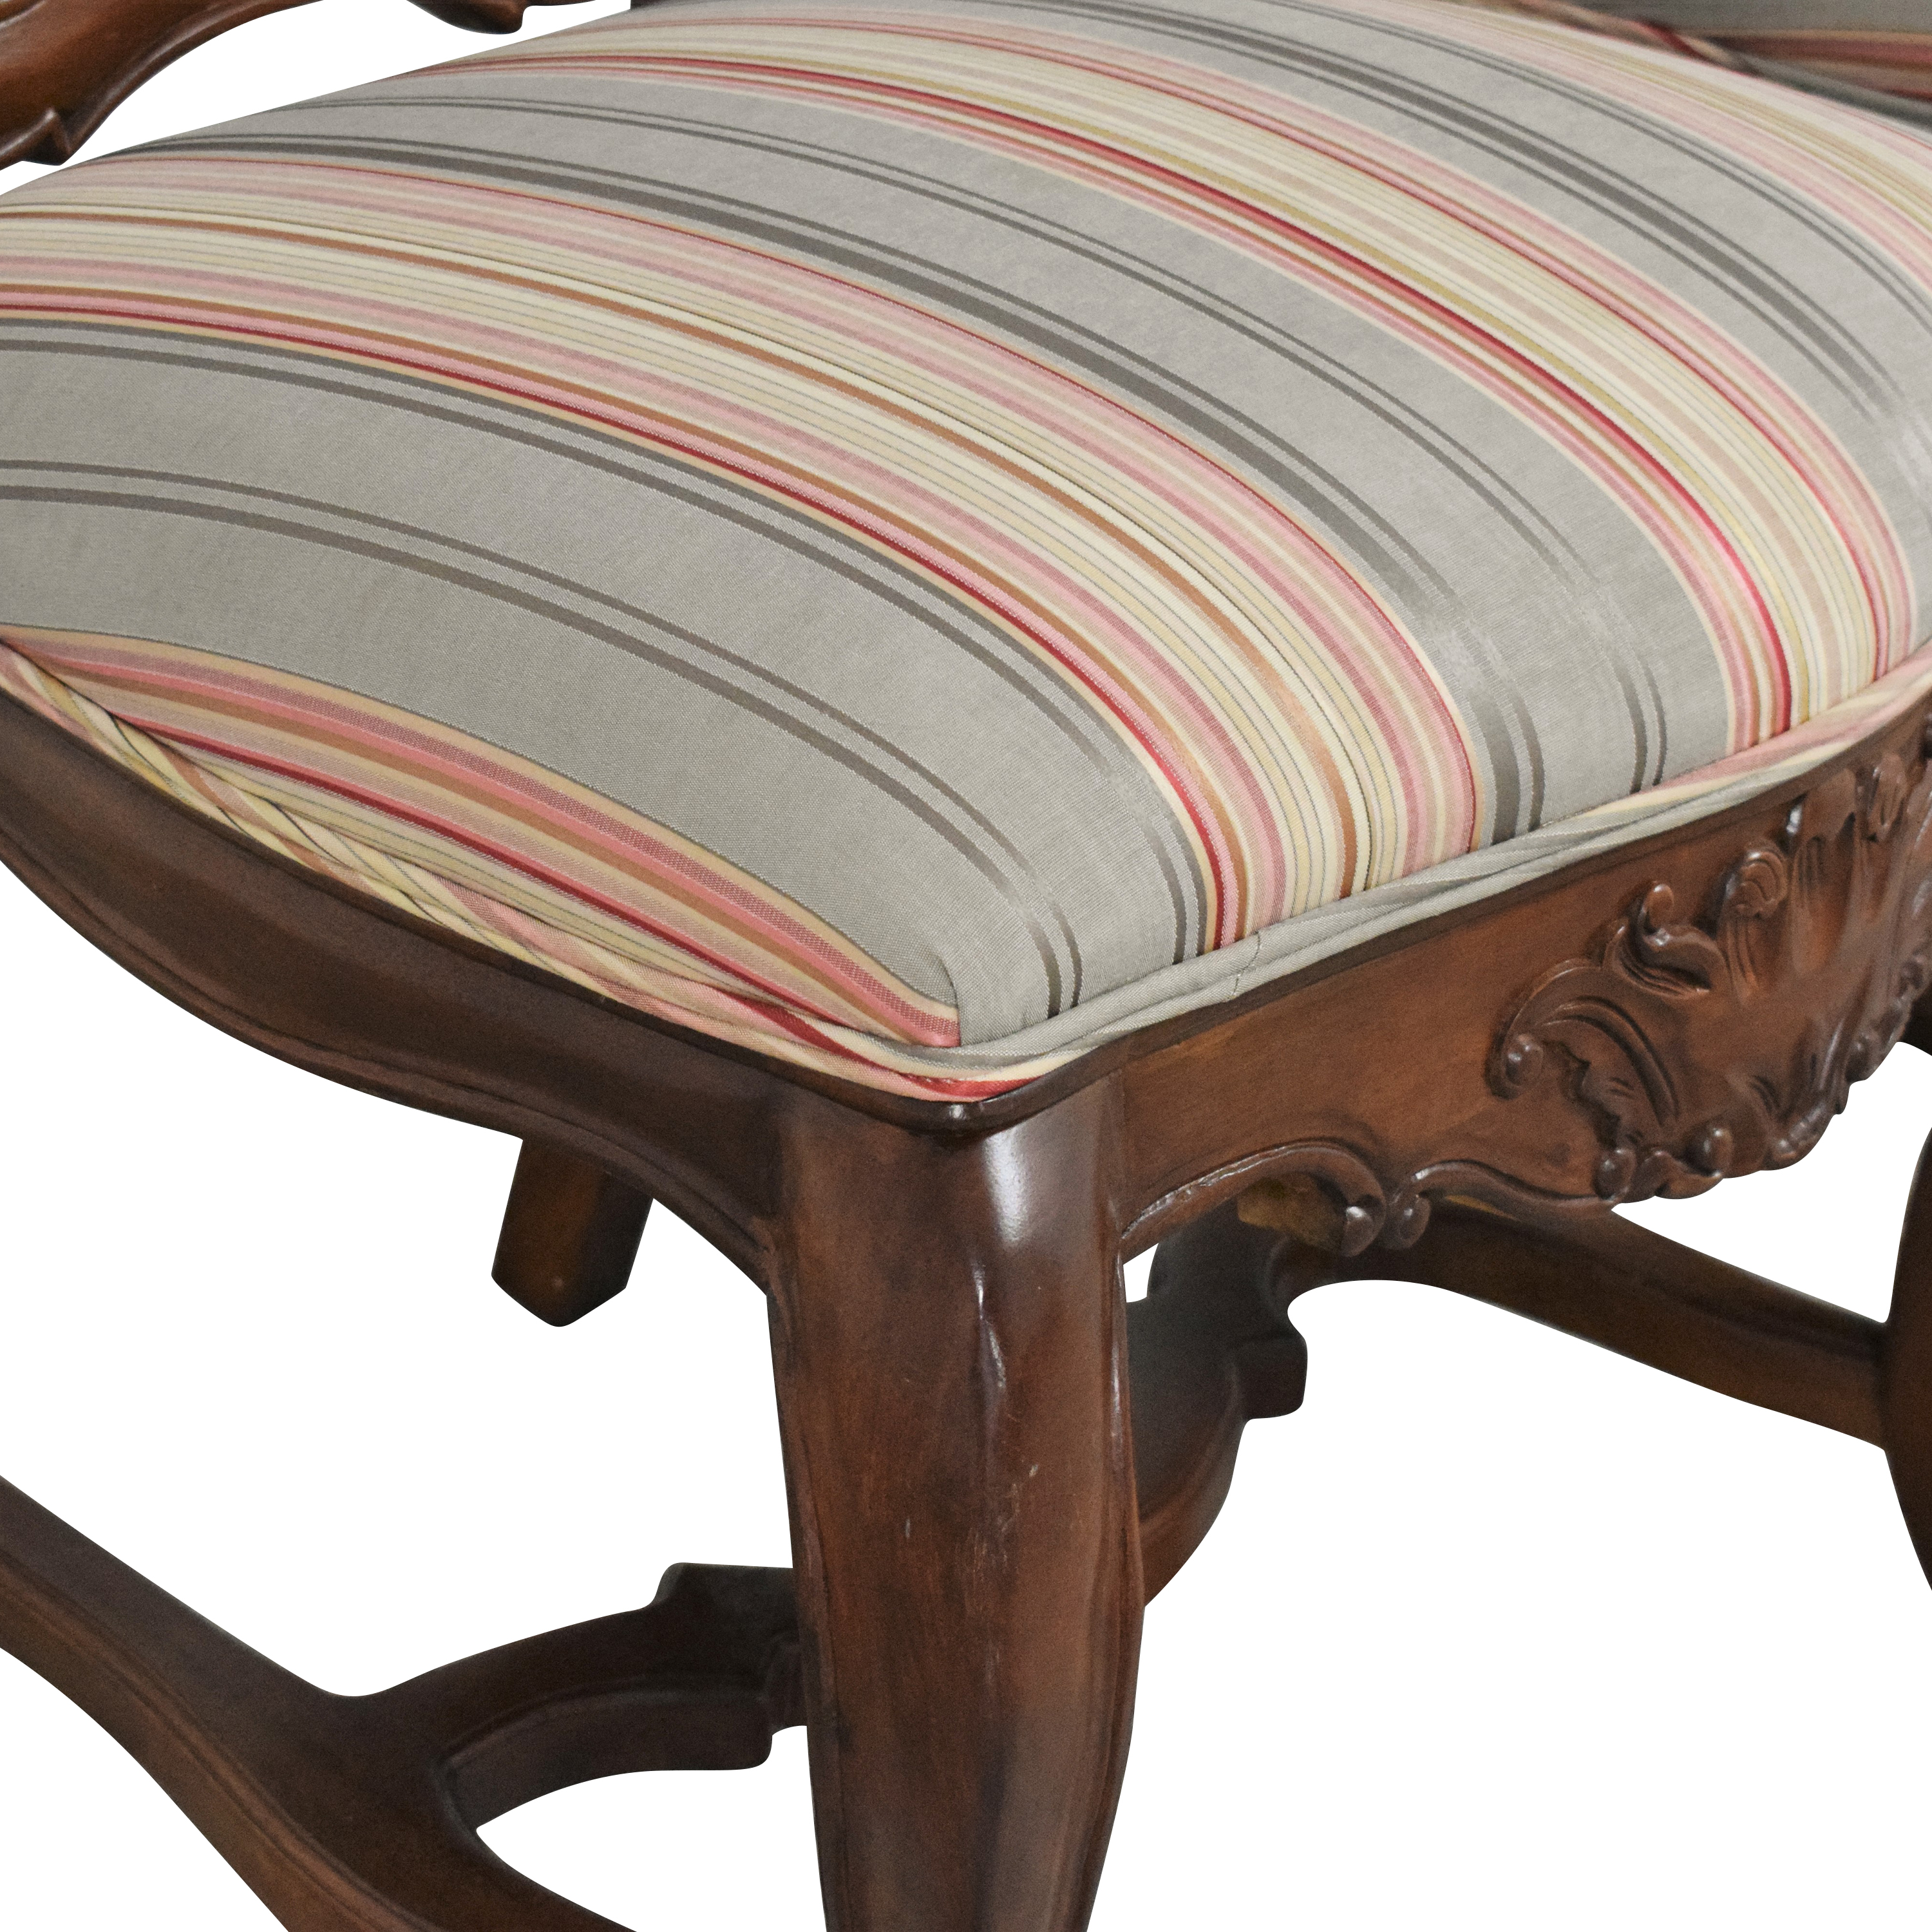 Andre Originals Andre Originals Stripe Upholstered Dining Chairs multi